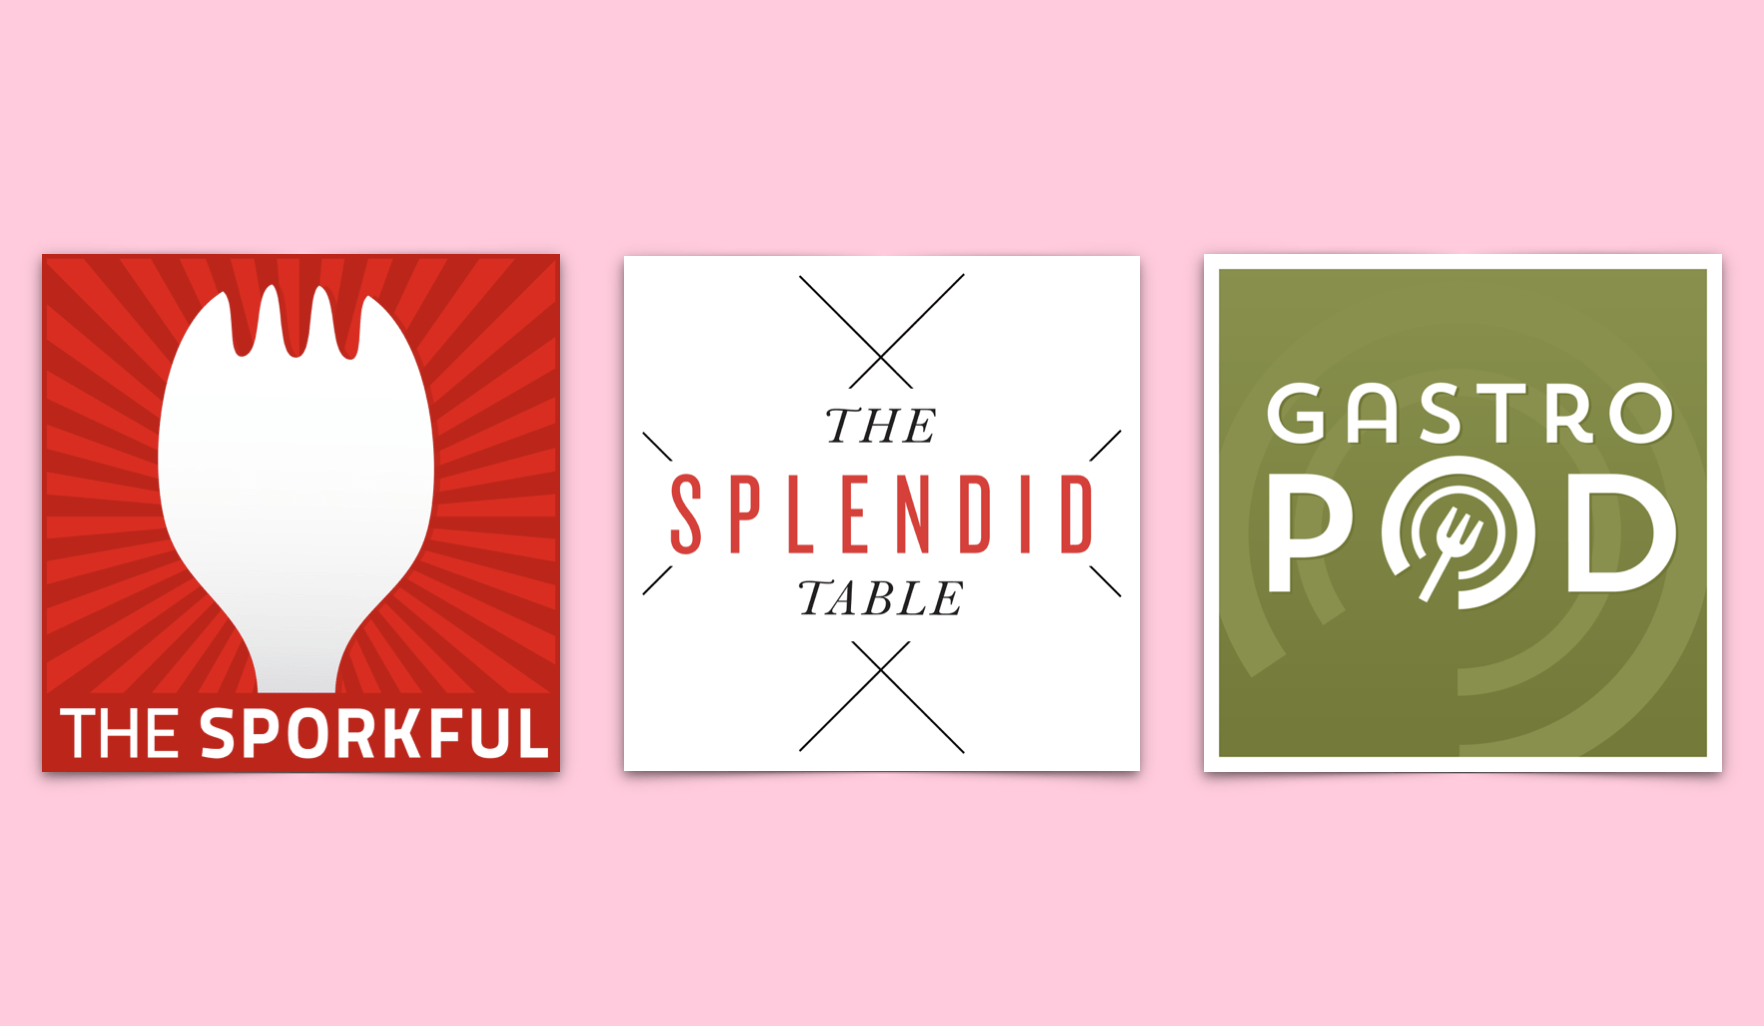 The Sporkful, The Splendid Table, and Gastropod